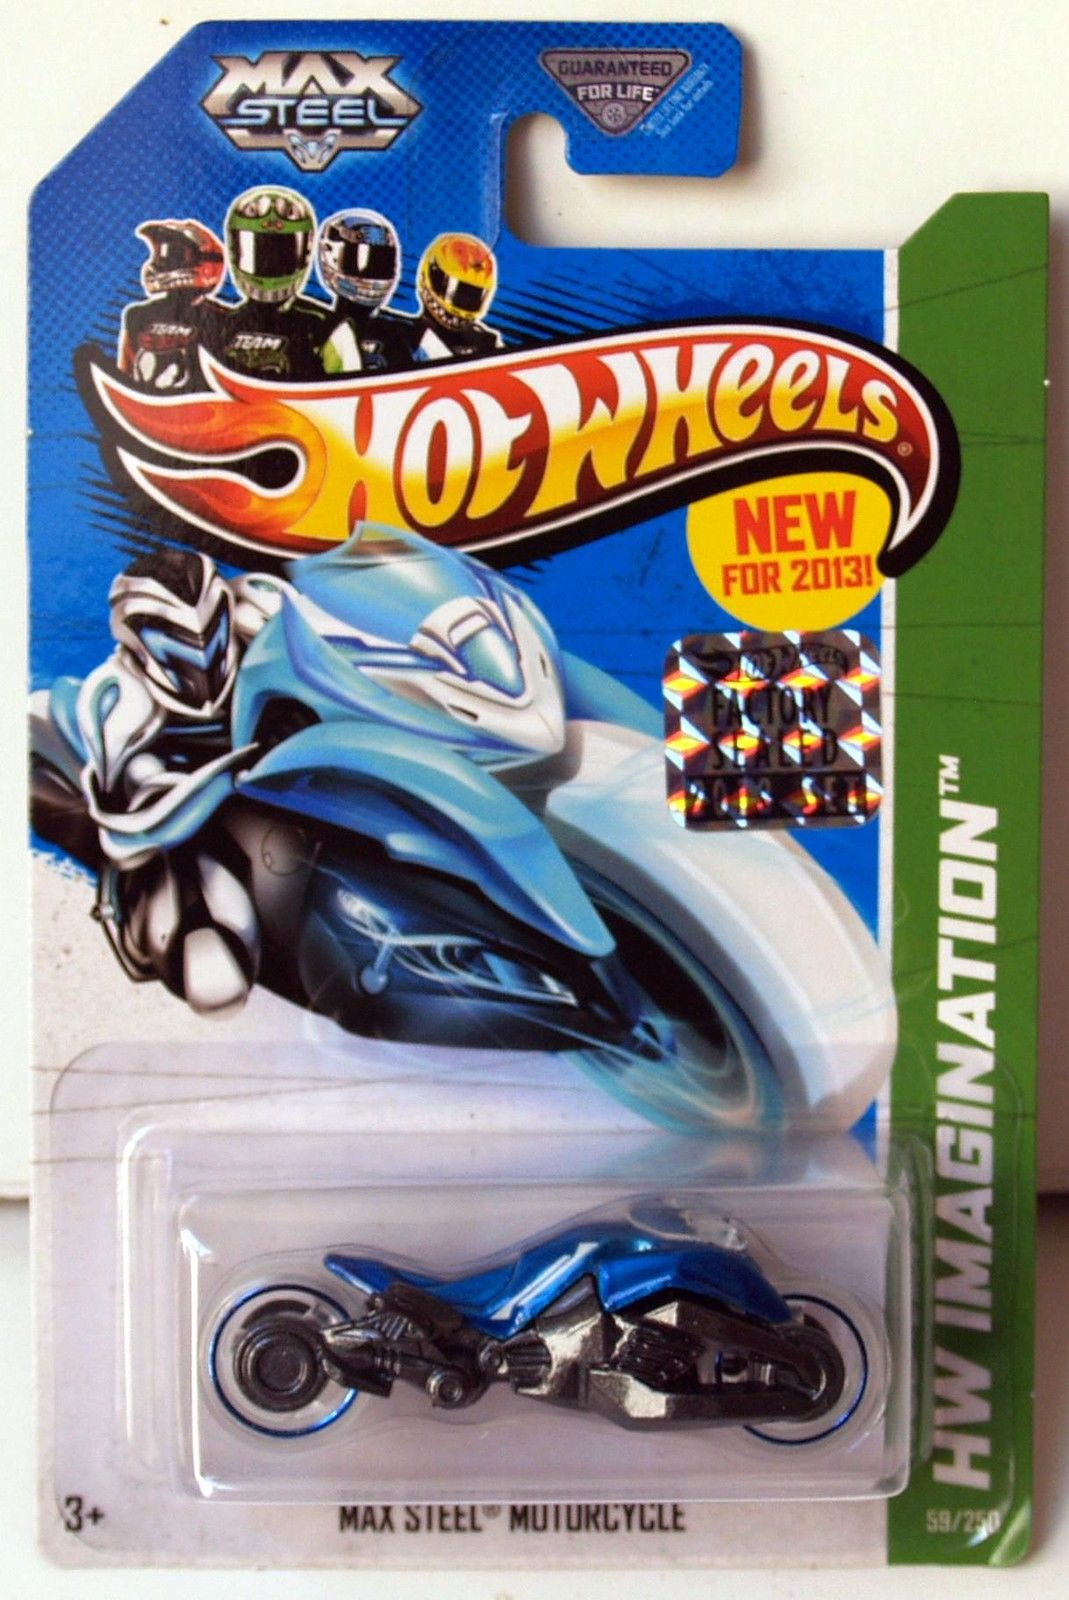 HOT WHEELS 2013 HW IMAGINATION MAX STEEL MOTORCYCLE BLUE FACTORY SEALED